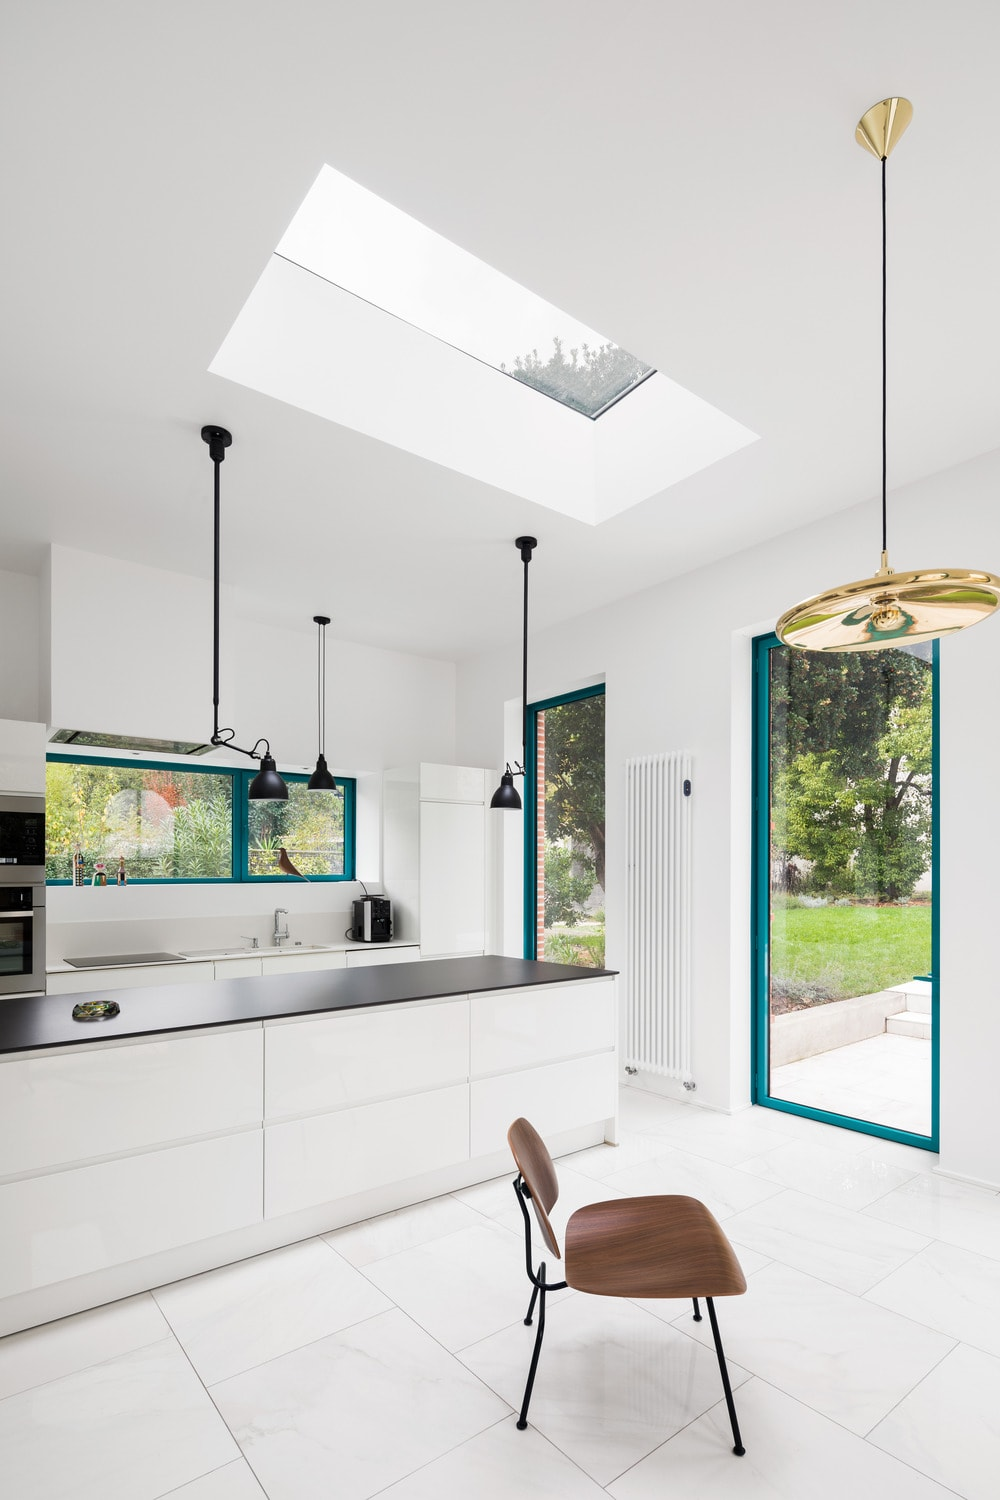 This angle shows more of the brilliant skylight of the white ceiling. This brings an abundance of natural lighting to the kitchen island that has a contrasting black countertop.